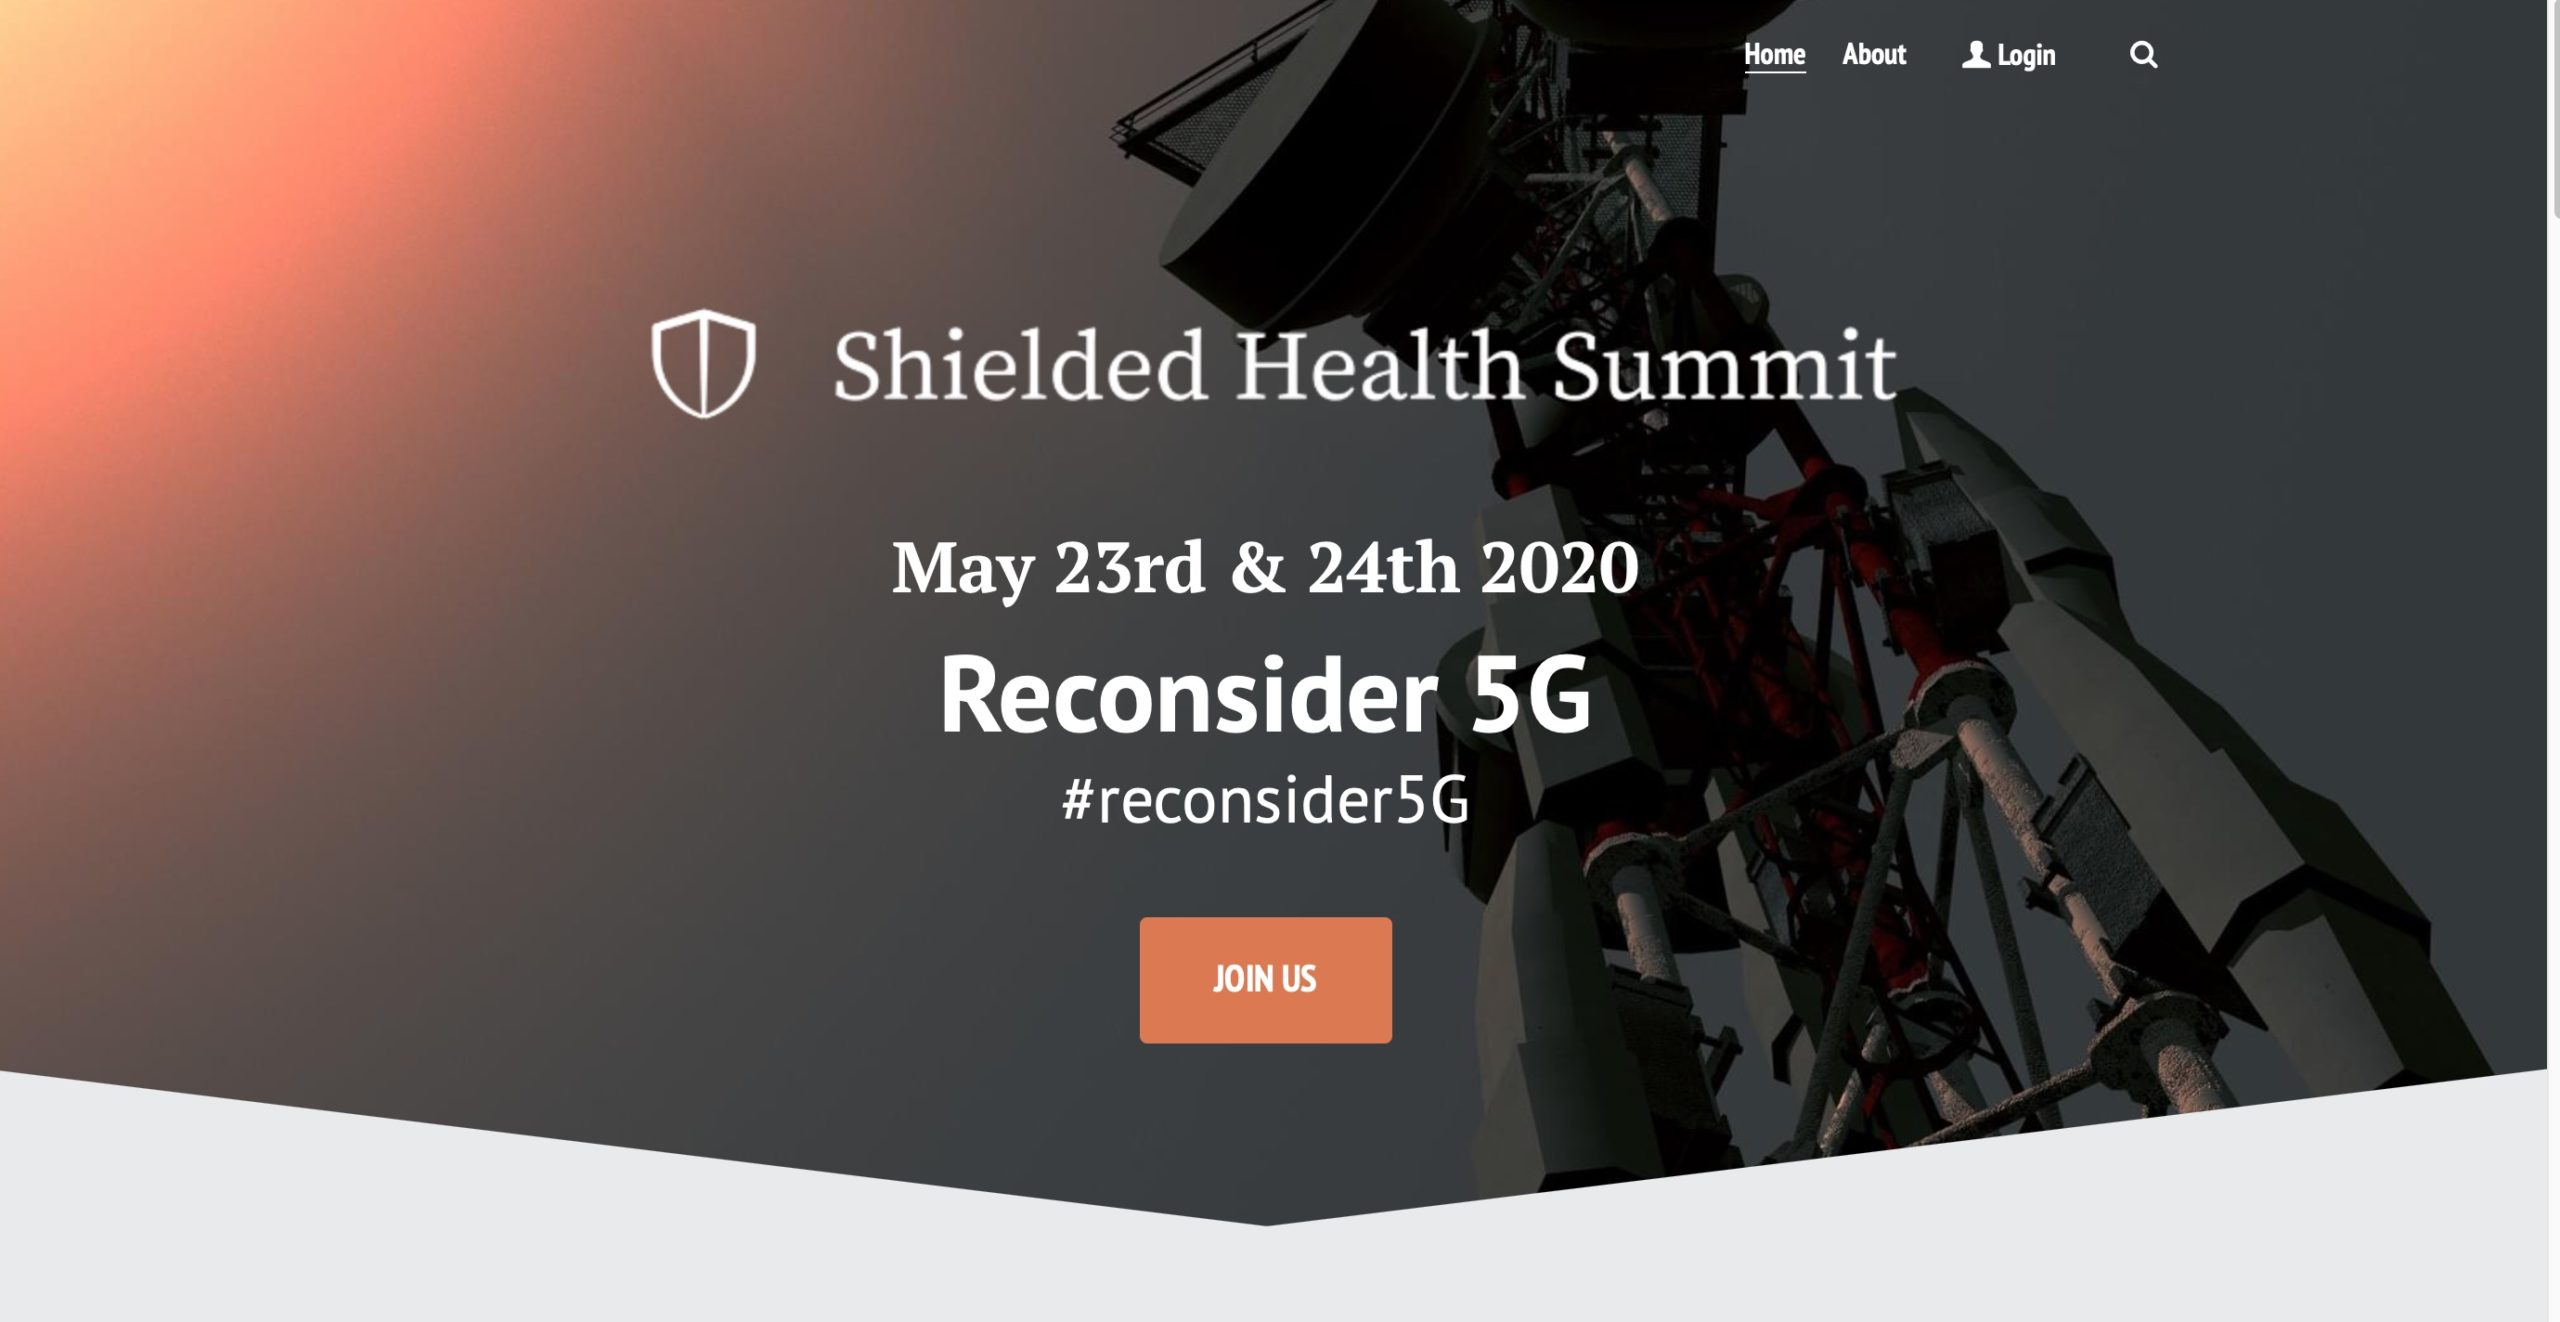 EVENT: The Shielded Health Online Summit – May 23rd & 24th 2020 Reconsider 5G, Smombie Gate | 5G | EMF